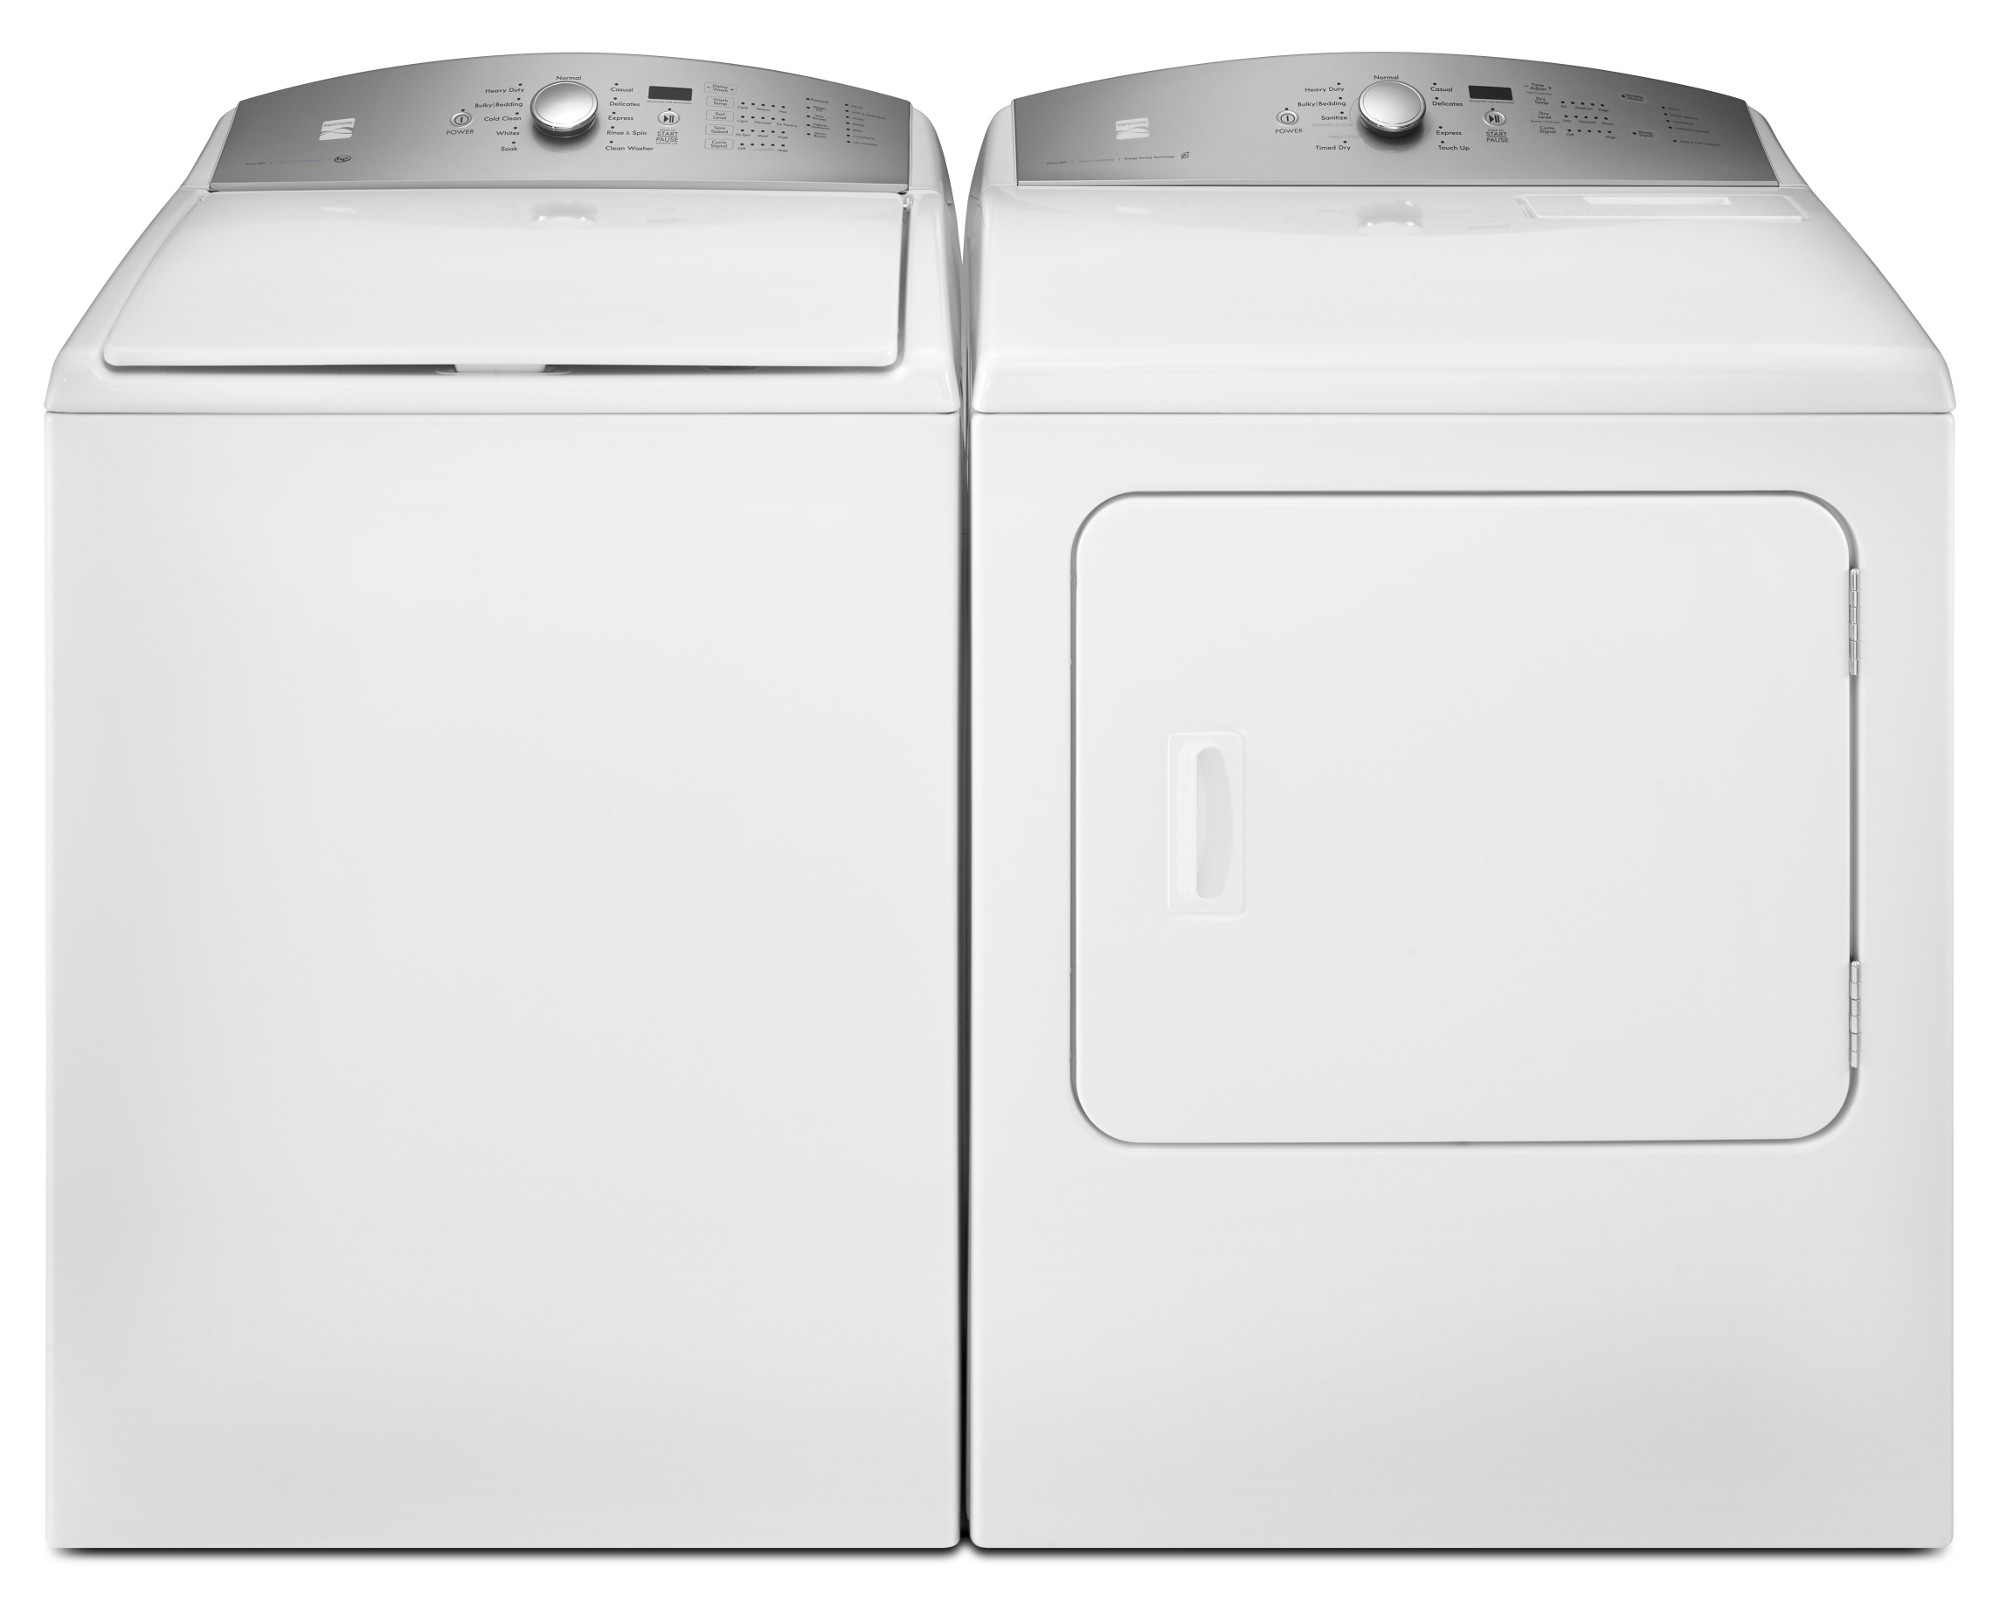 sc 1 st  Sears Hardware Stores & Kenmore 4.8 cu. ft. Top Load Washer u0026 7.0 cu. ft. Dryer - White pezcame.com